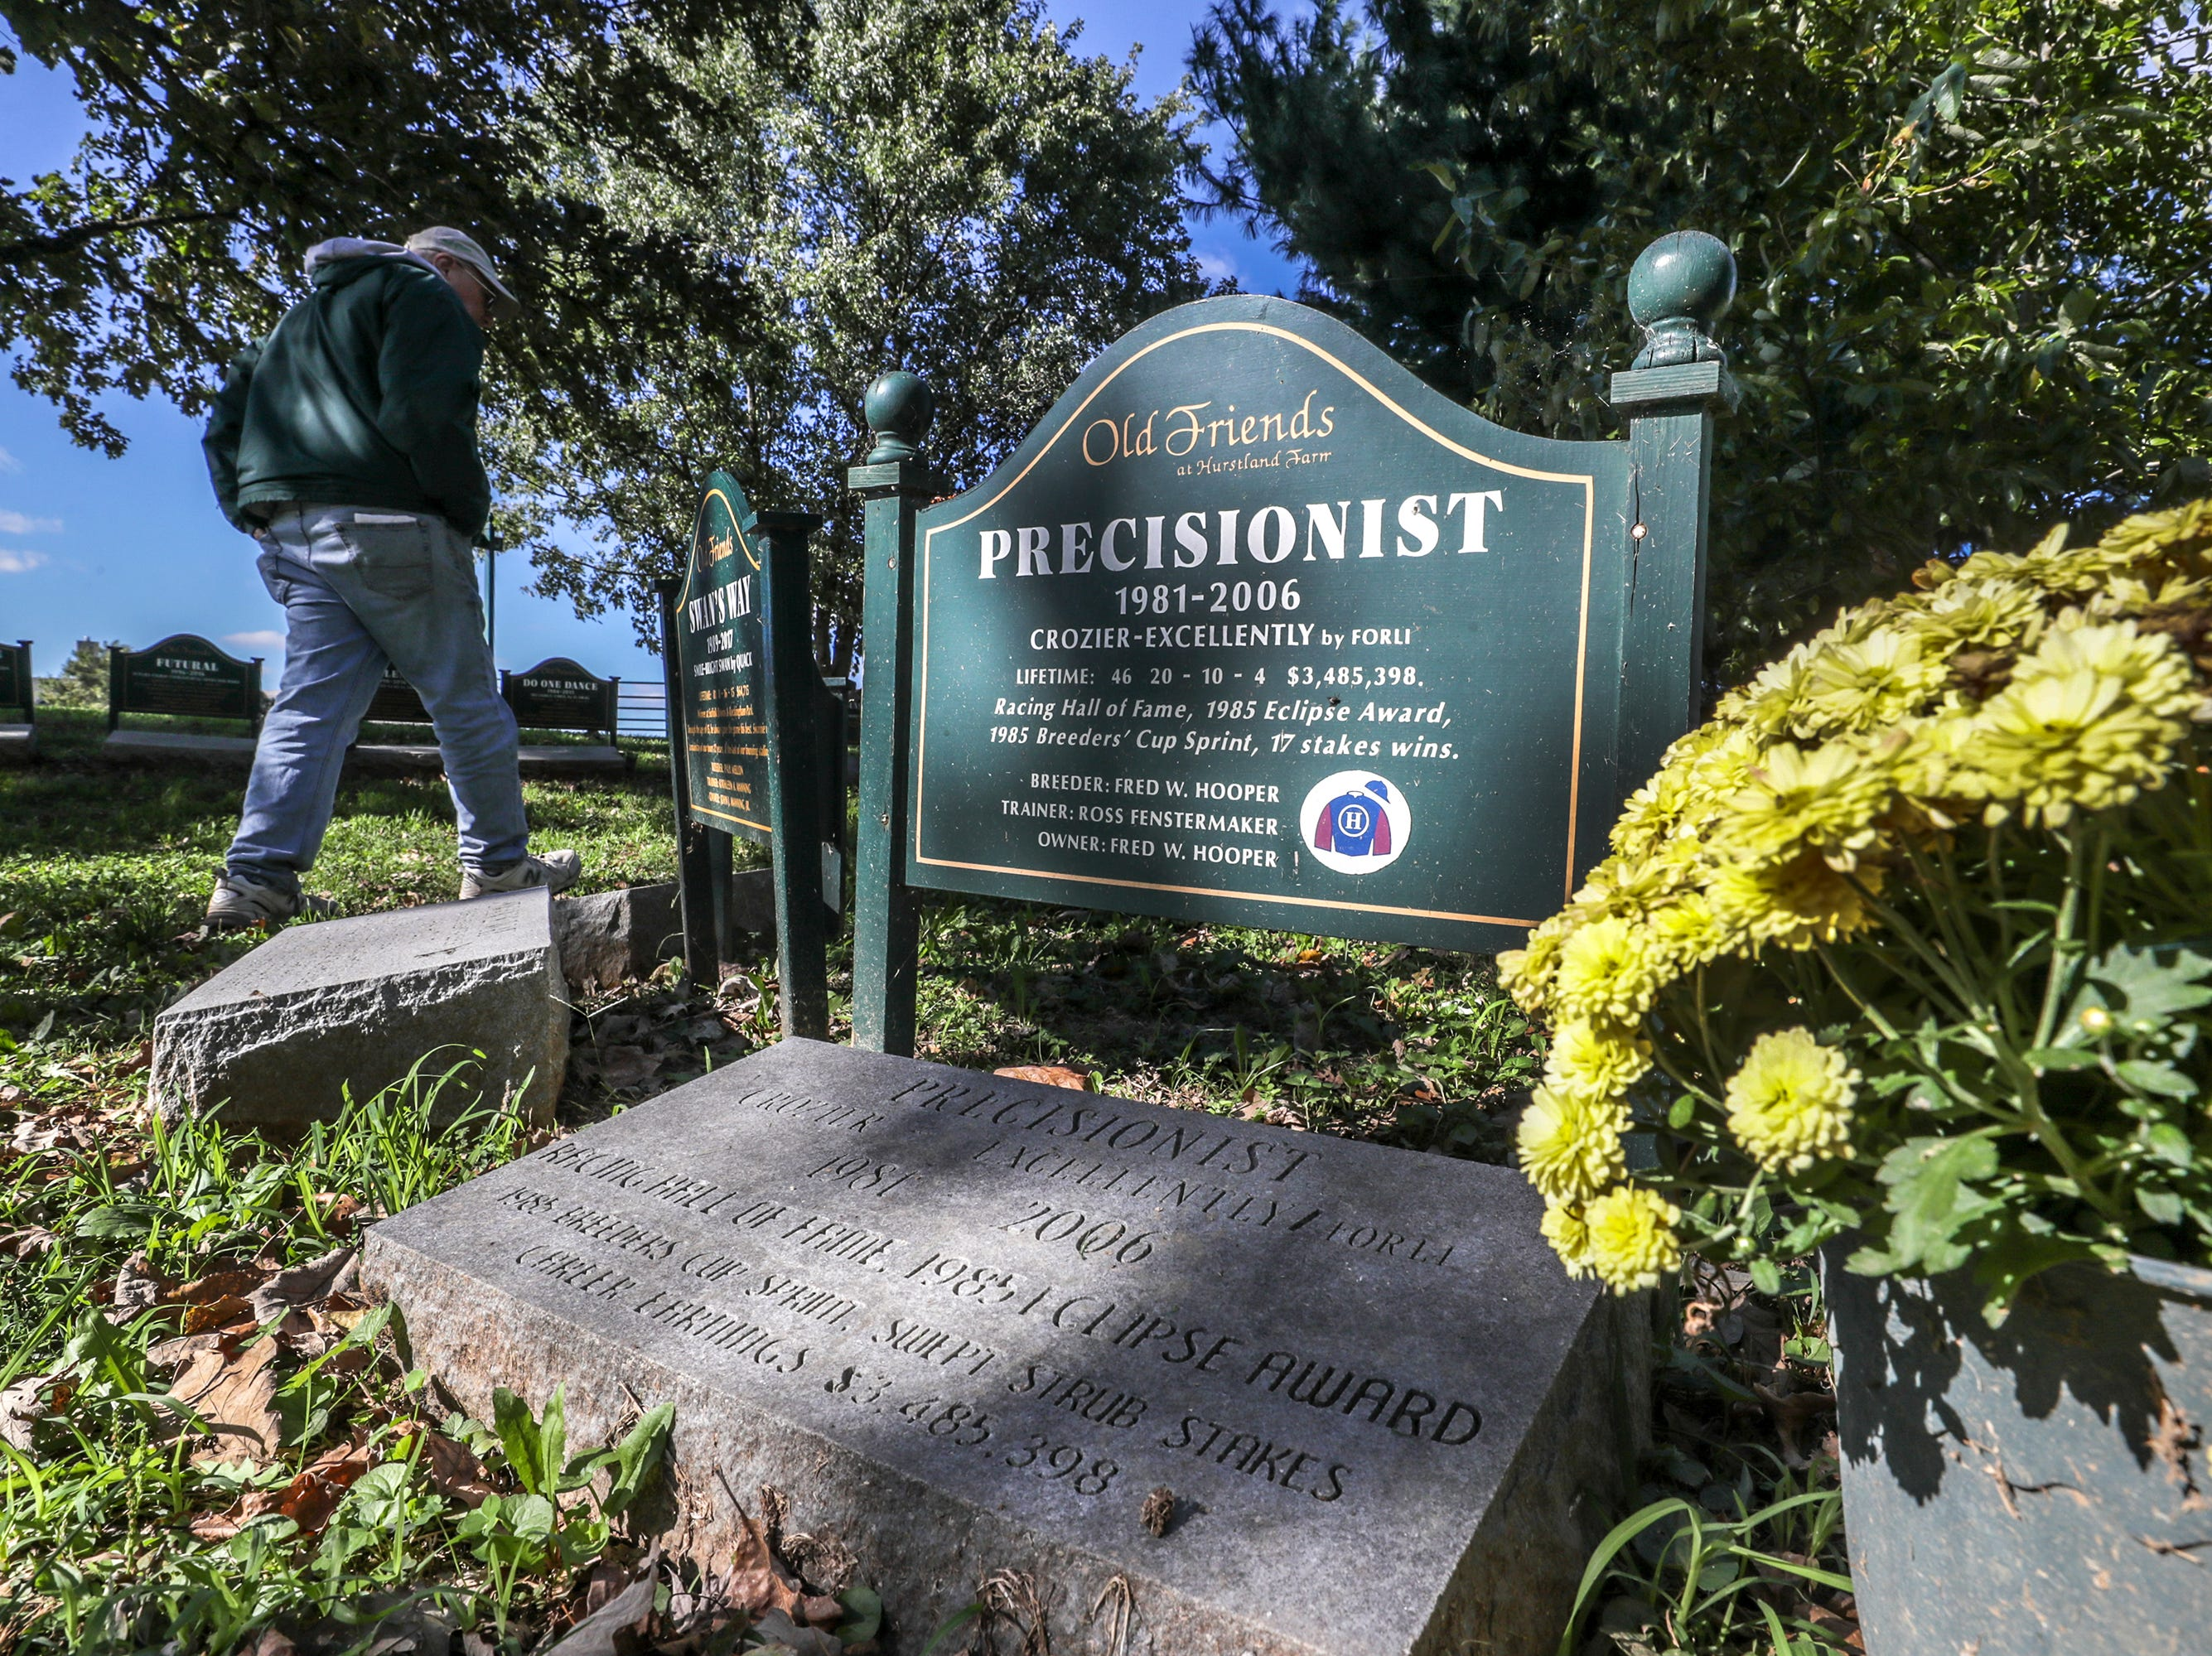 Many great racehorses are buried at Old Friends Farm after they die including Breeders Cup champion Precisionist.October 10, 2018